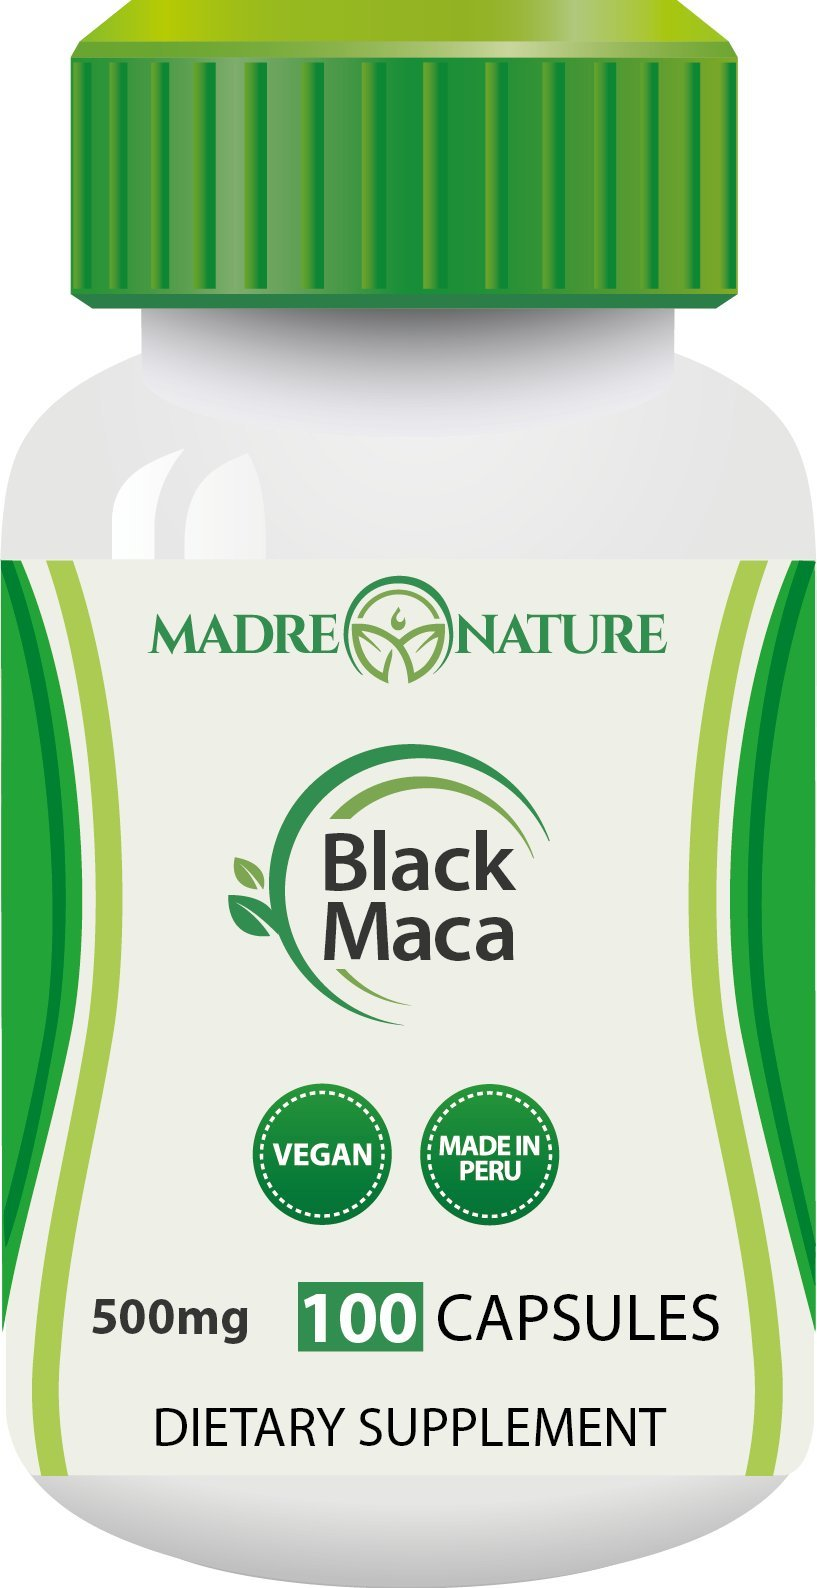 Madre Nature - Organic Gelatinized Black Maca Root Supplement from Peru - 500mg X 100 Capules (Vegan) - Peruvian Andes - Gluten-free